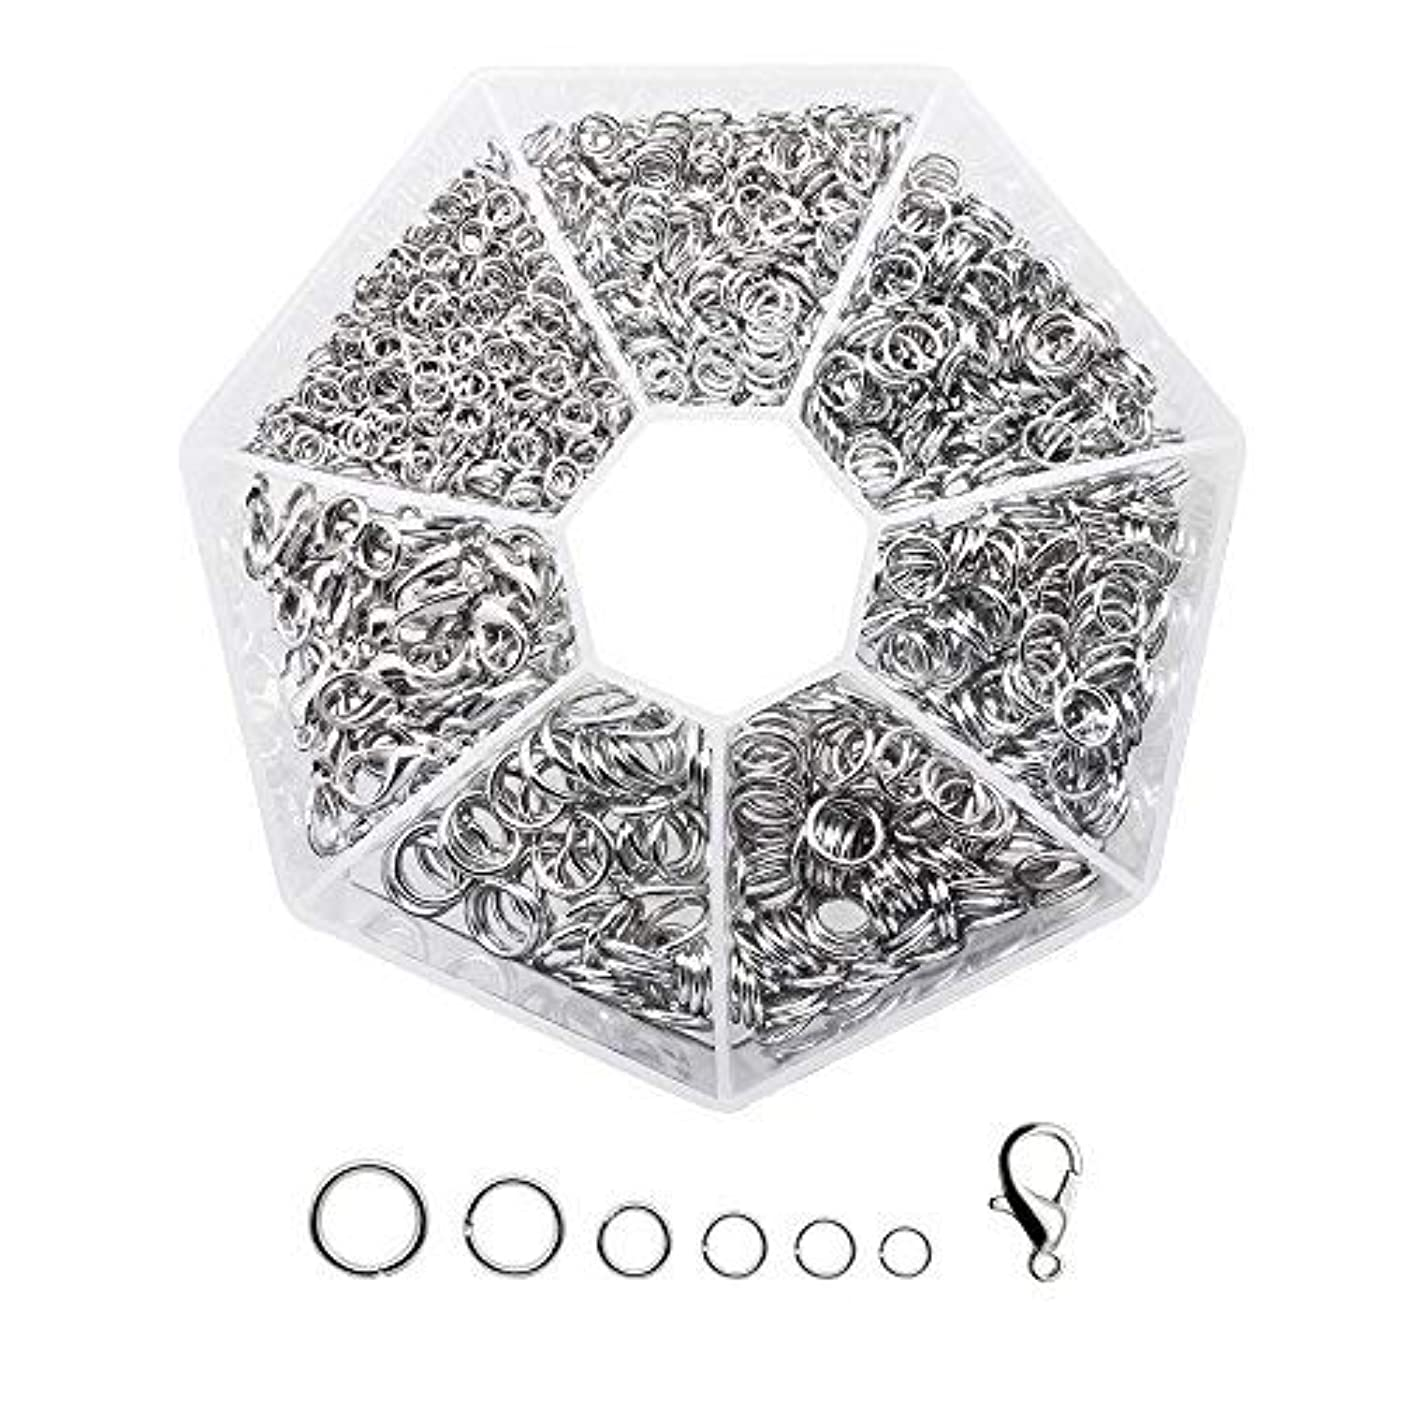 Dreamtop Open Jump Rings 4mm 5mm 6mm 7mm 8mm 9mm and Lobster Claw Clasp Box Set for DIY Jewelry Making Findings